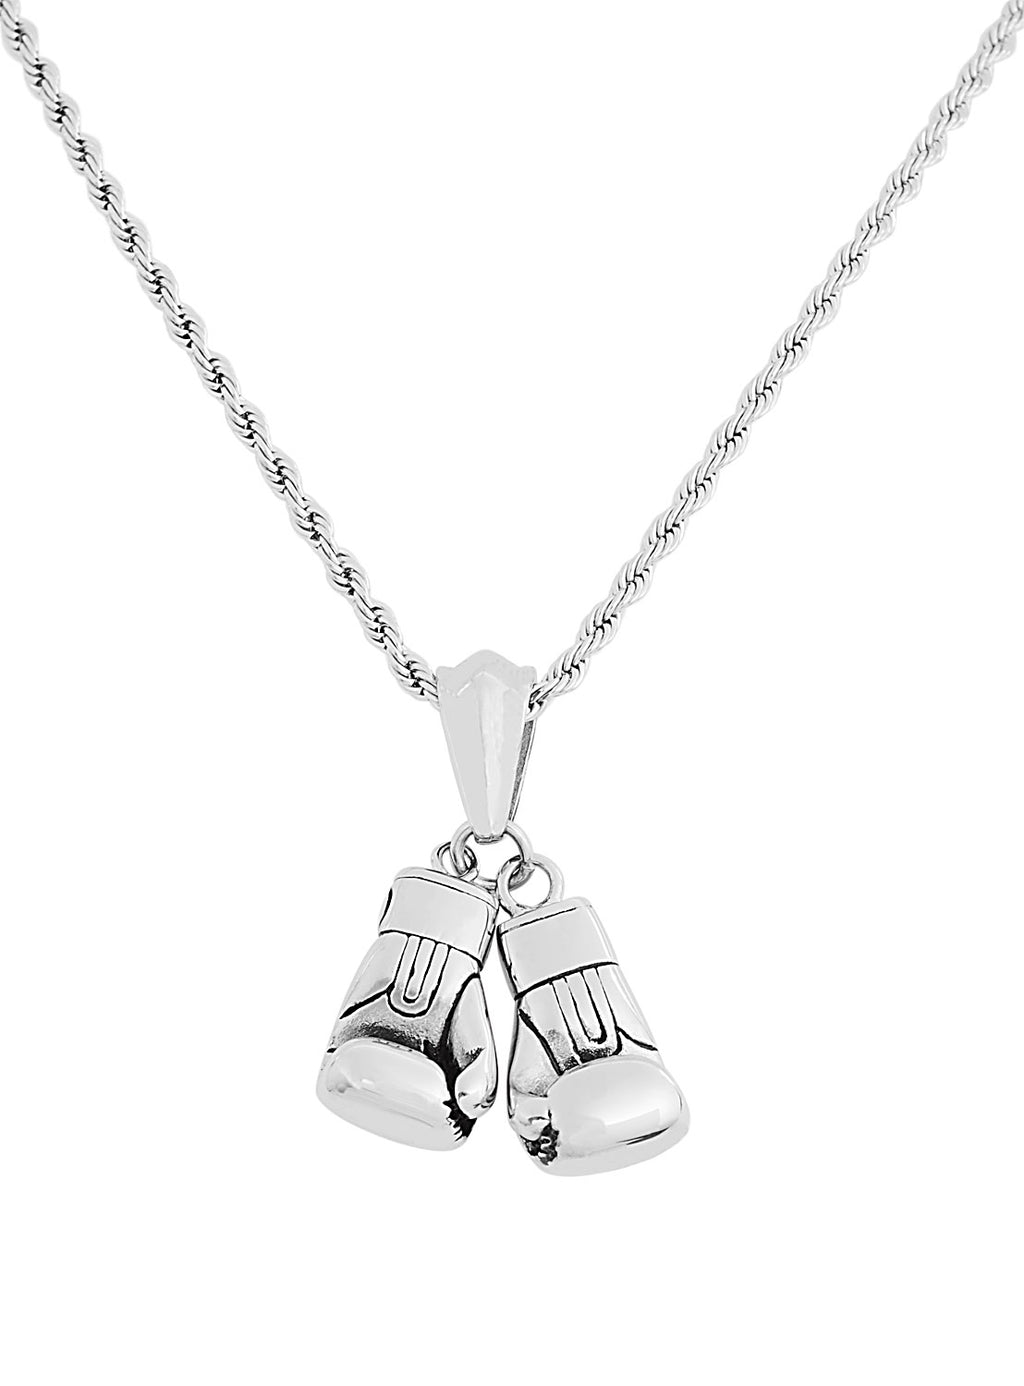 Silver Stainless Steel Boxing Gloves Pendant Necklace